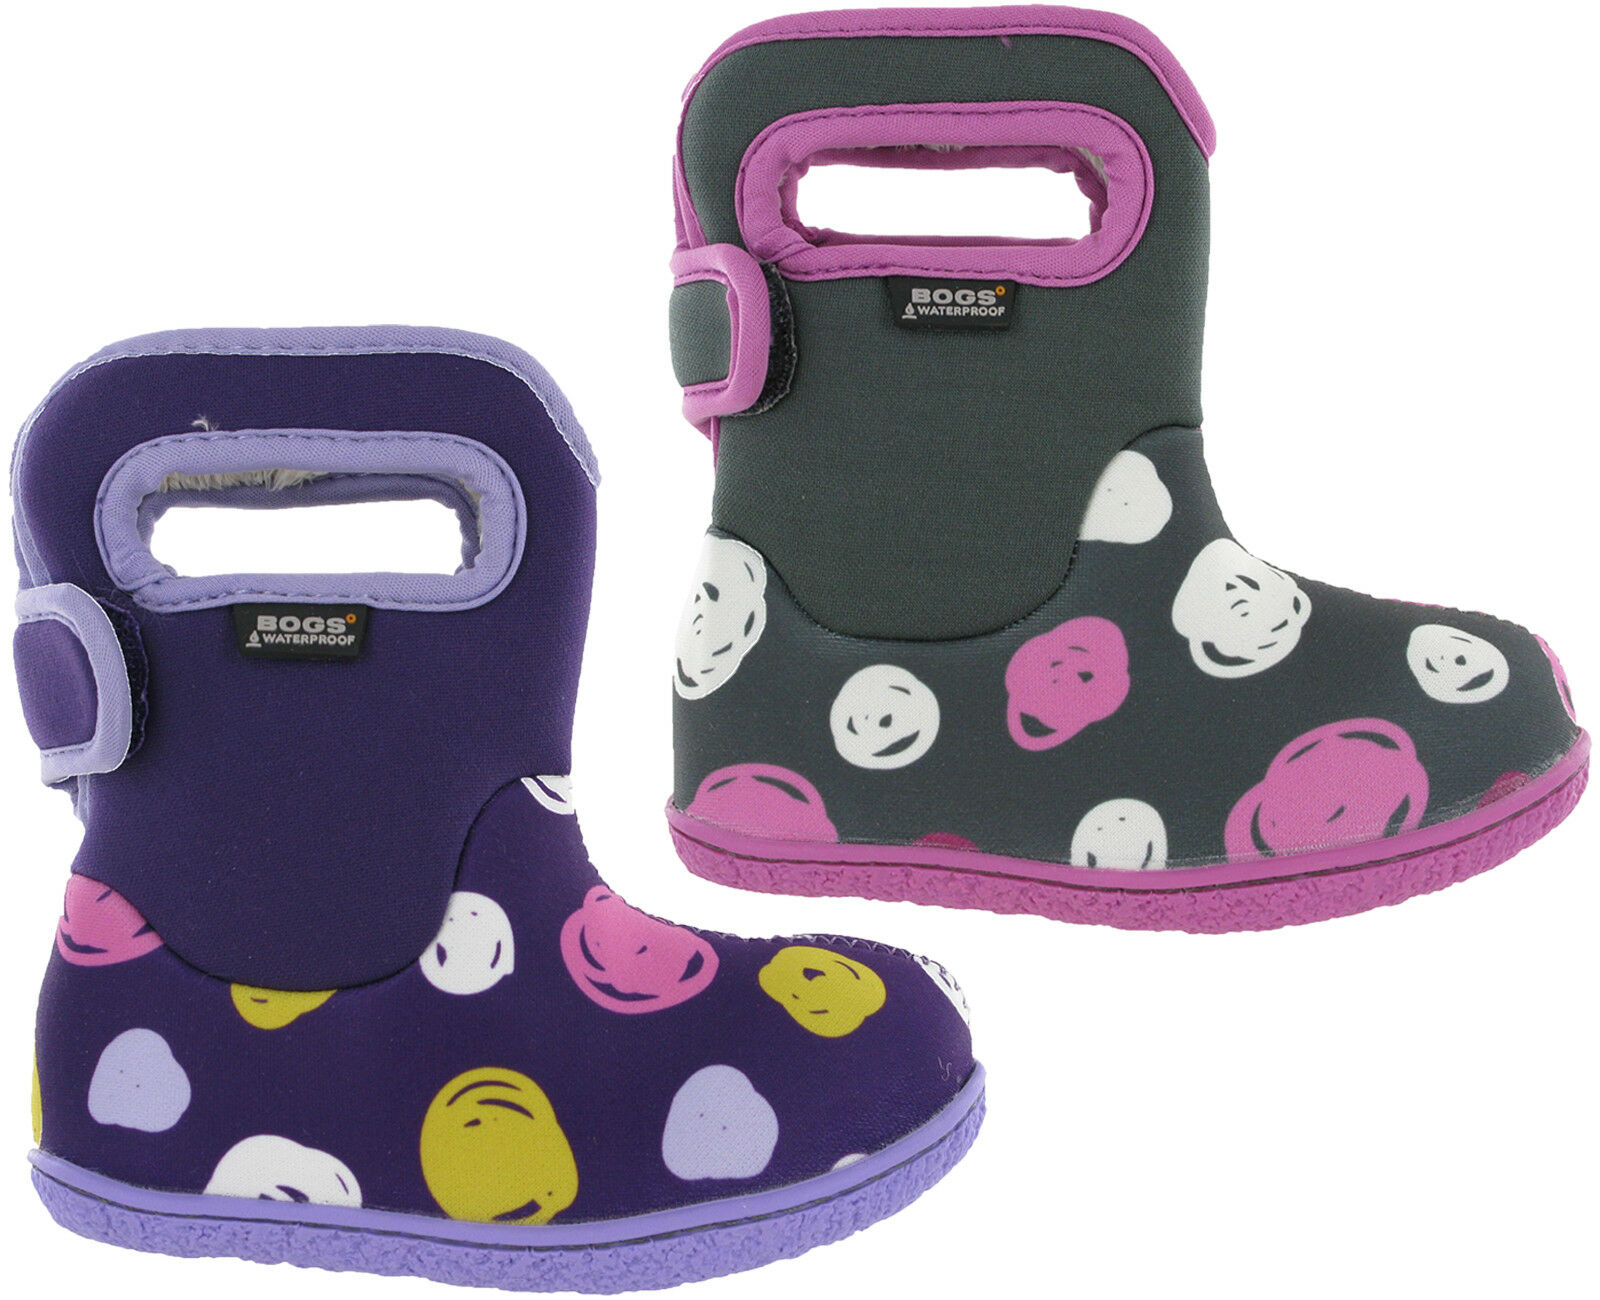 Bogs Wellingtons Boots Baby Waterproof -10 SK Dot Fur Lined  Kids Girls  clearance up to 70%